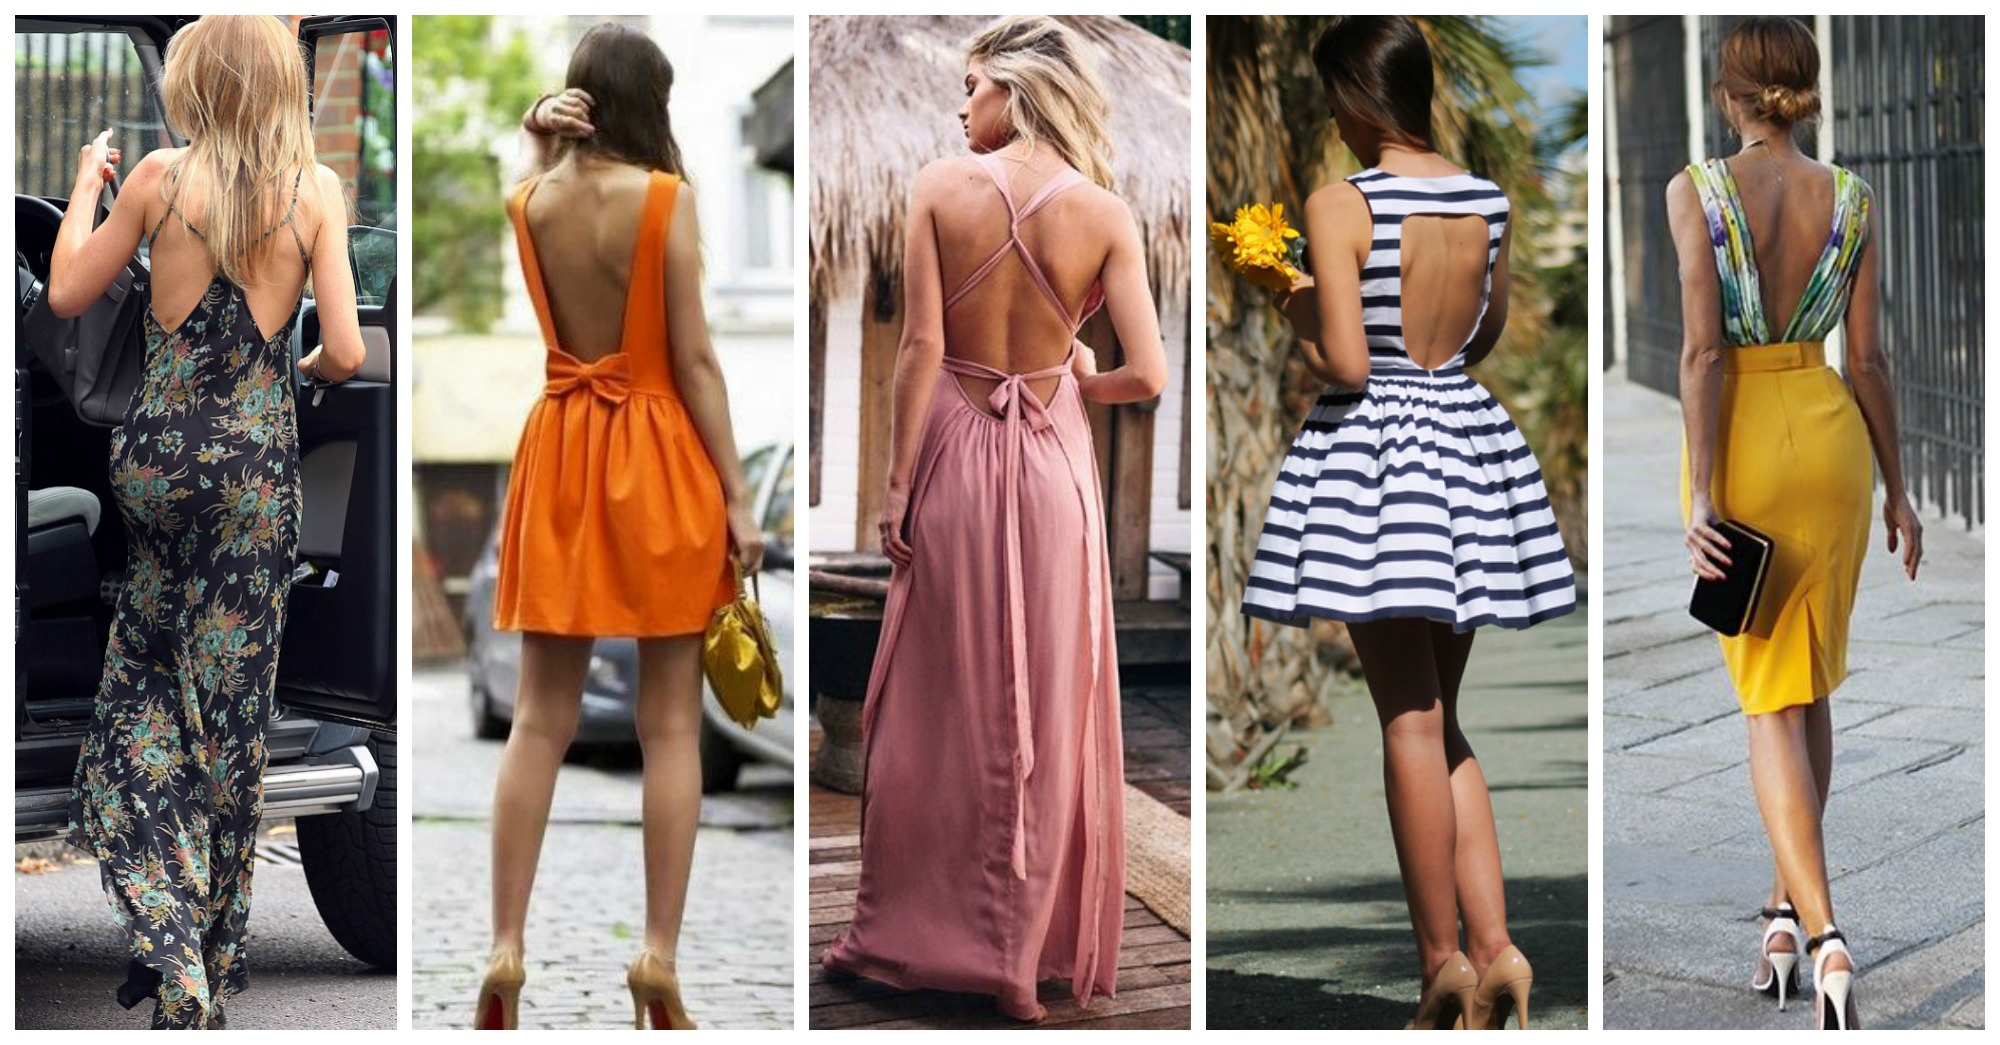 16 Fashionable Backless Dresses and Tops to Wear This Summer